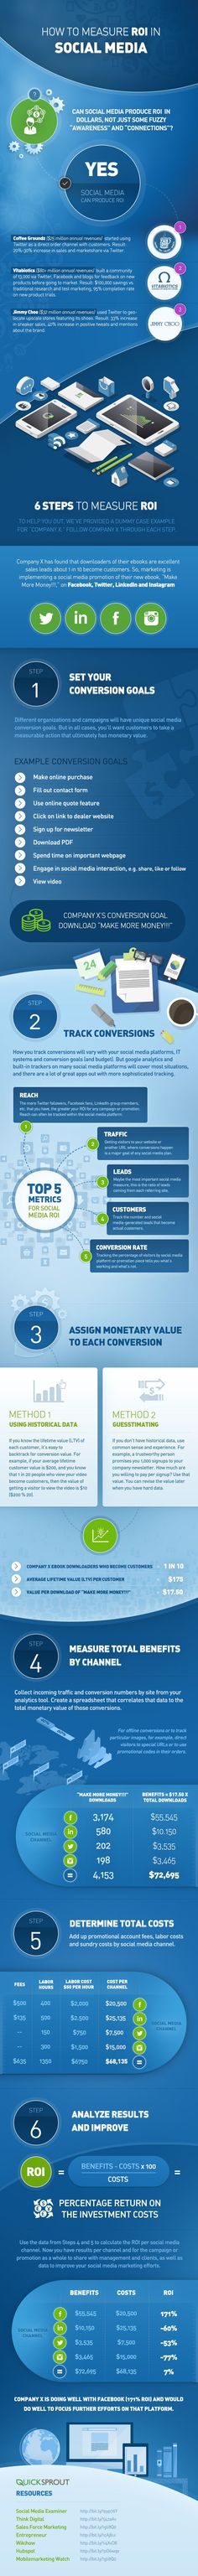 6 Steps to Measure #SocialMedia ROI [INFOGRAPHIC]